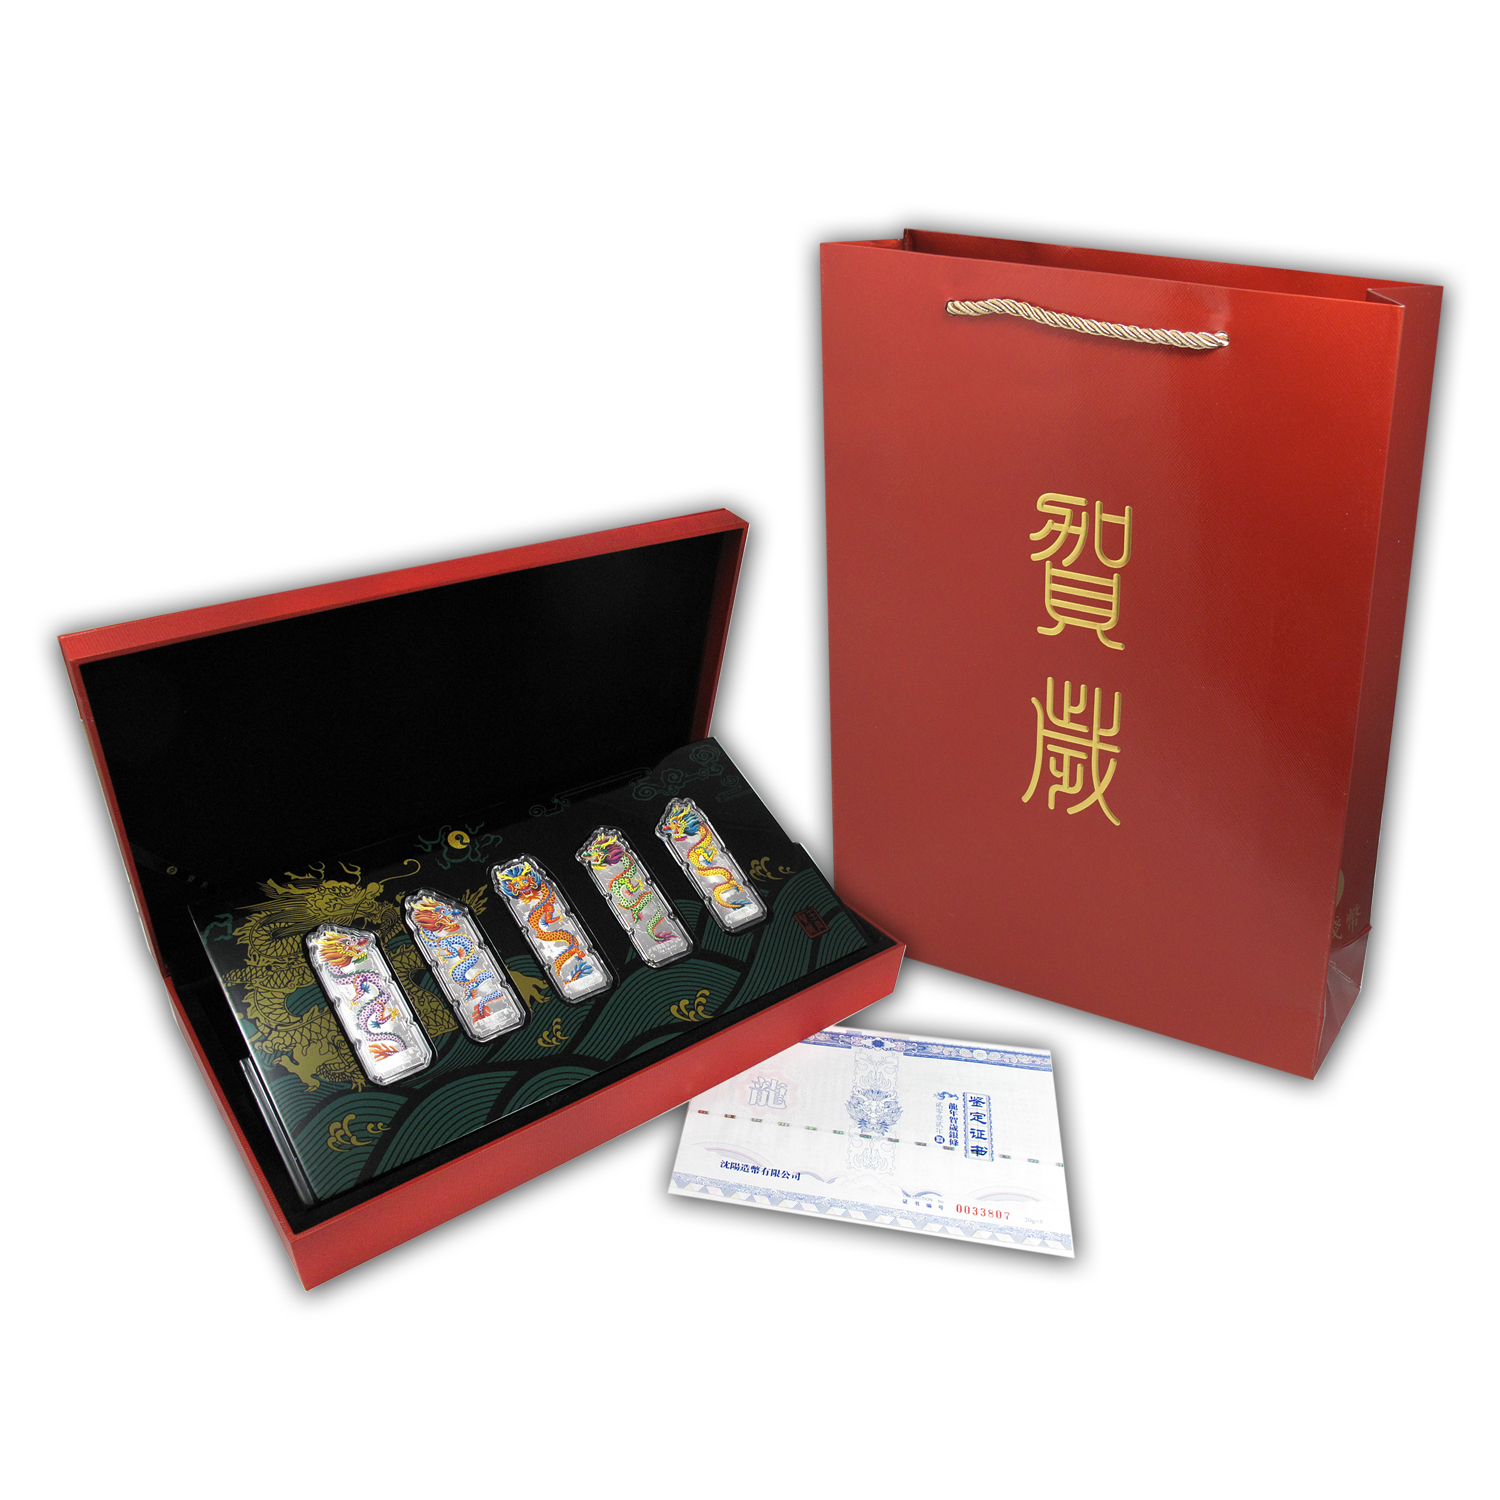 20 gram Silver Bars - Year of the Dragon (2012/Colorized/5 pc.)